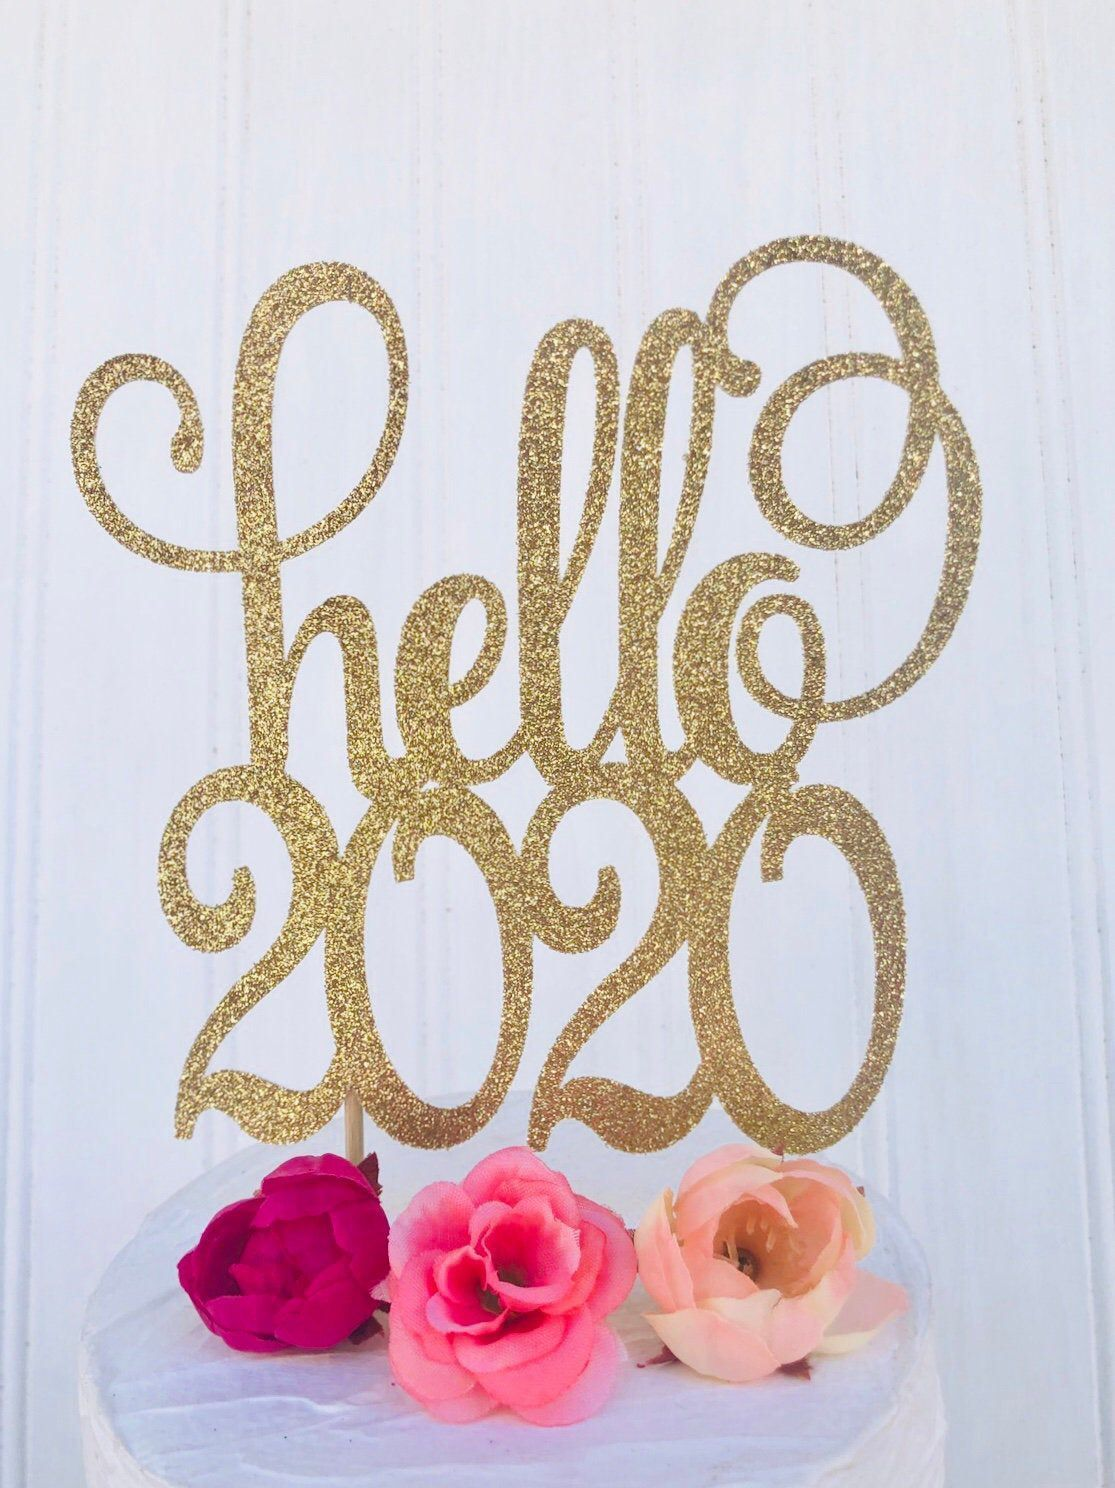 2020 Cake Topper, Hello 2020 Cake Topper, New Years Eve